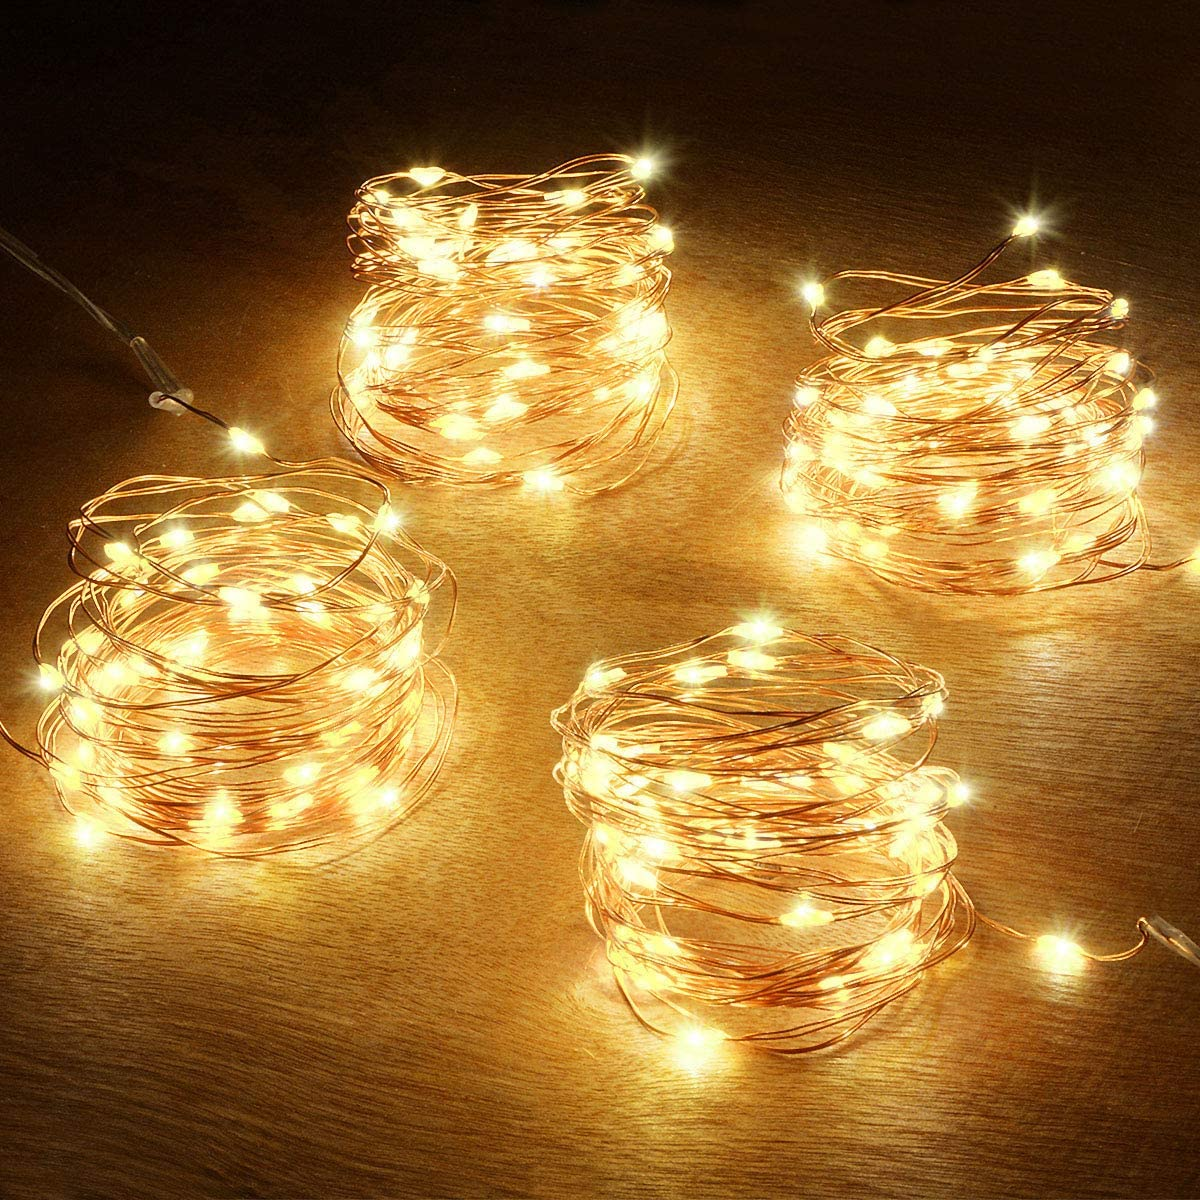 Abkshine Battery String Lights, 4 Pack 50 LED Warm White Battery-Powered Mini Christmas Fairy Lights, Battery Operated LED Lights for Christmas, Party, Wedding, Centerpiece, Bedroom Decoration